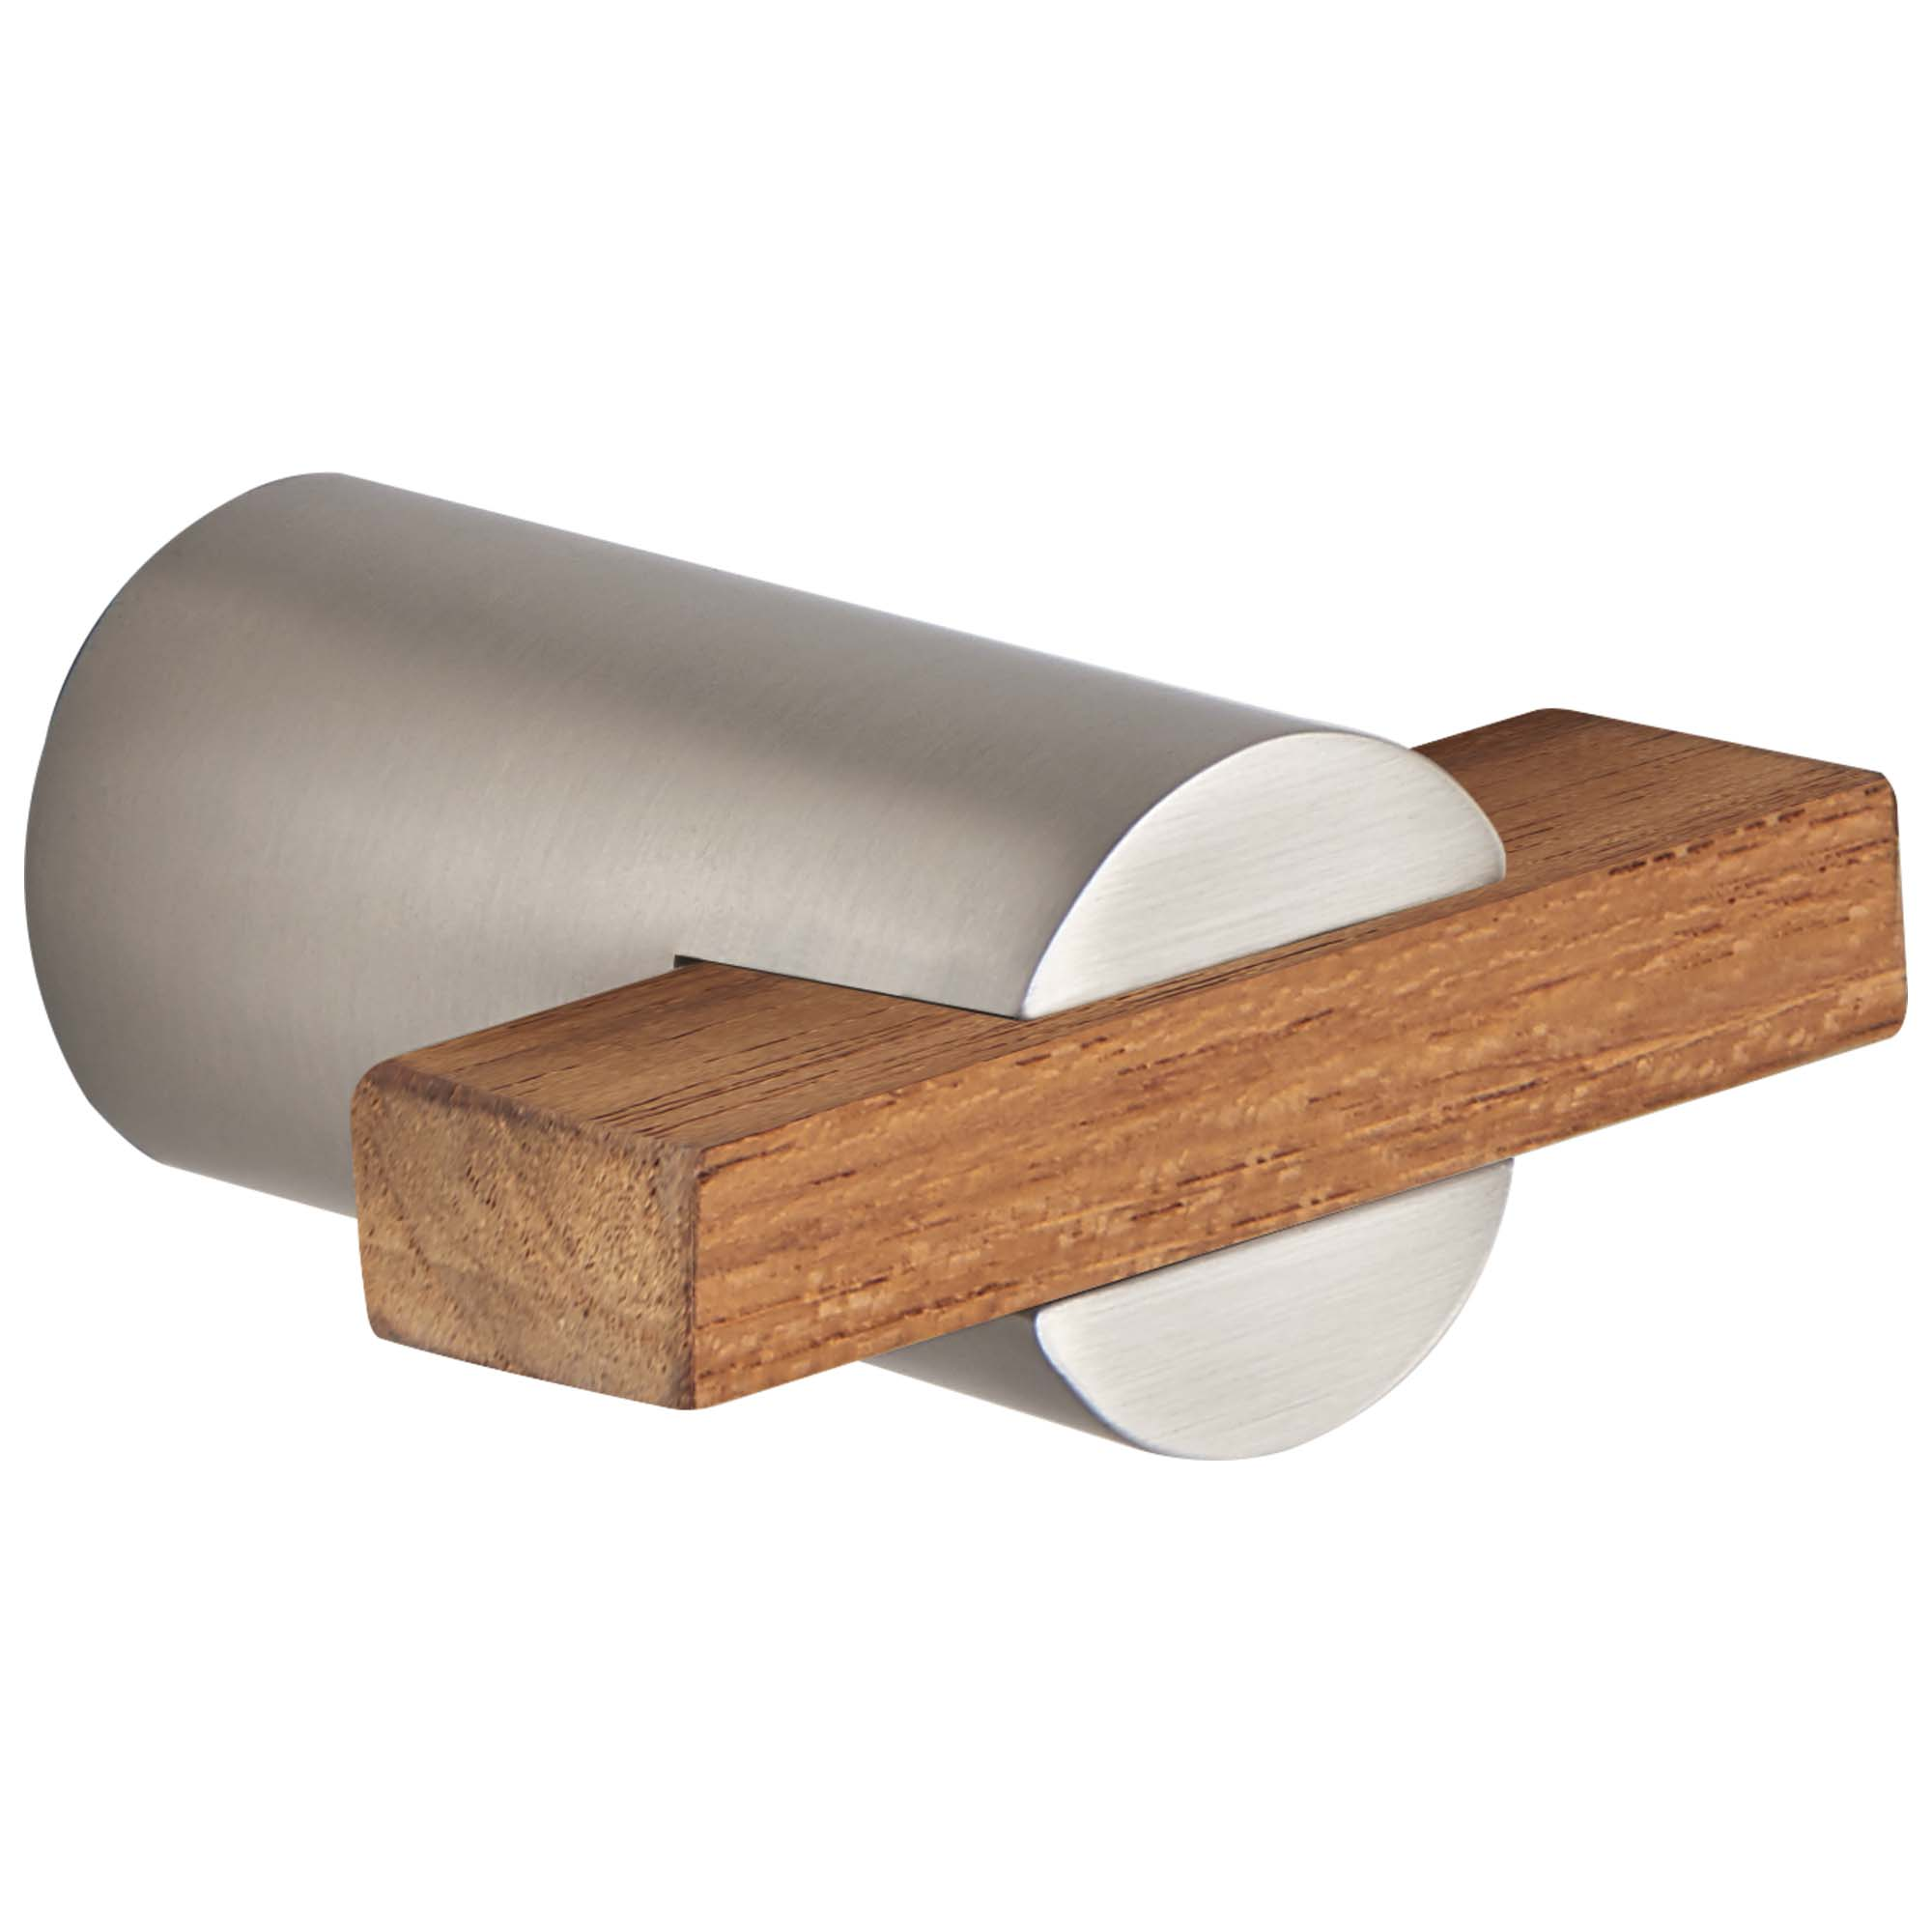 Brizo 699135-NKTK Litze Drawer Pull - Luxe Nickel/Teak Wood